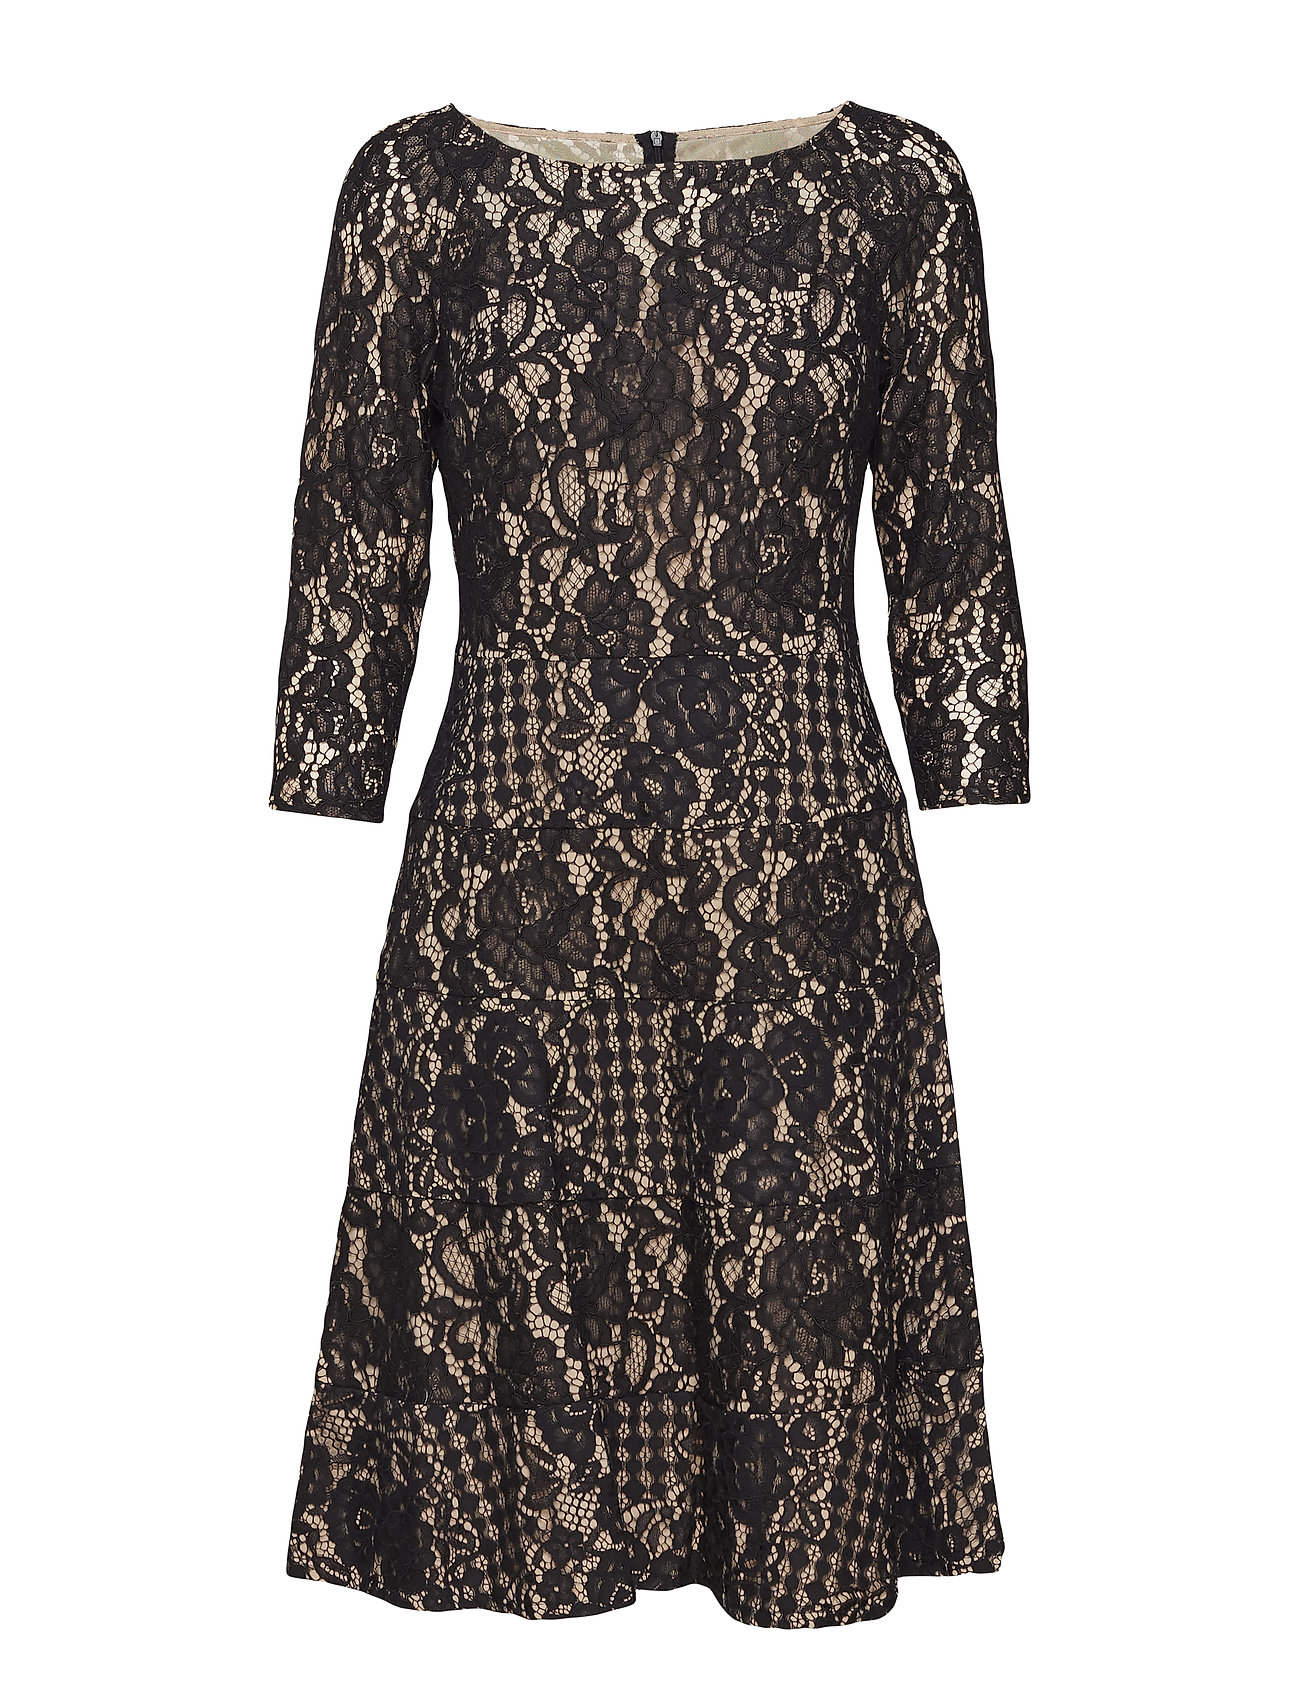 blk sprl flare and ChamLauren Ralph Fit Lace Dressblk 0wX8nNkOPZ